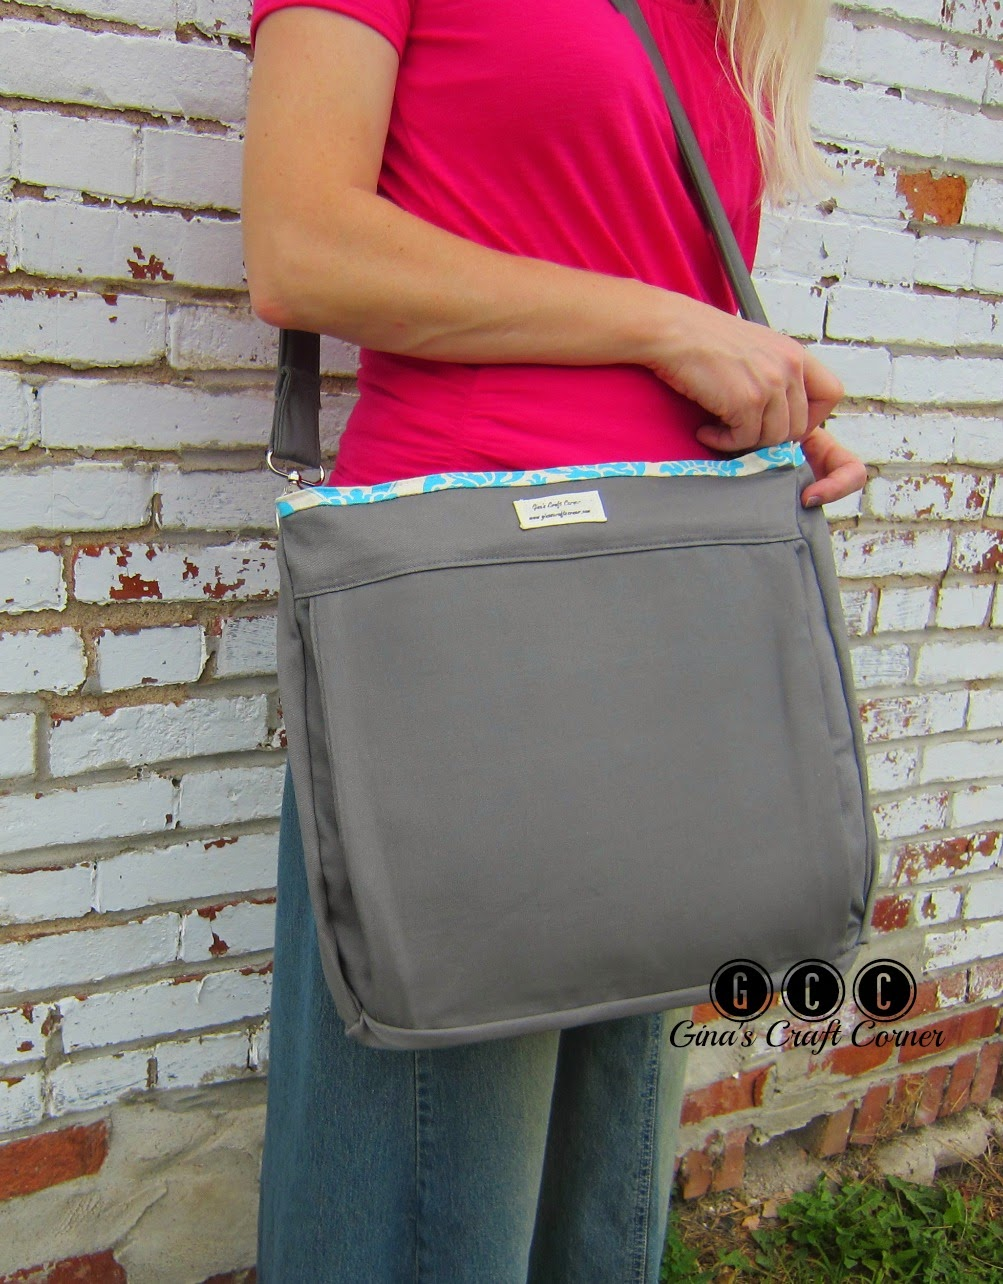 Original Slouchy Hobo (Conceal and Carry) by Gina's Craft Corner